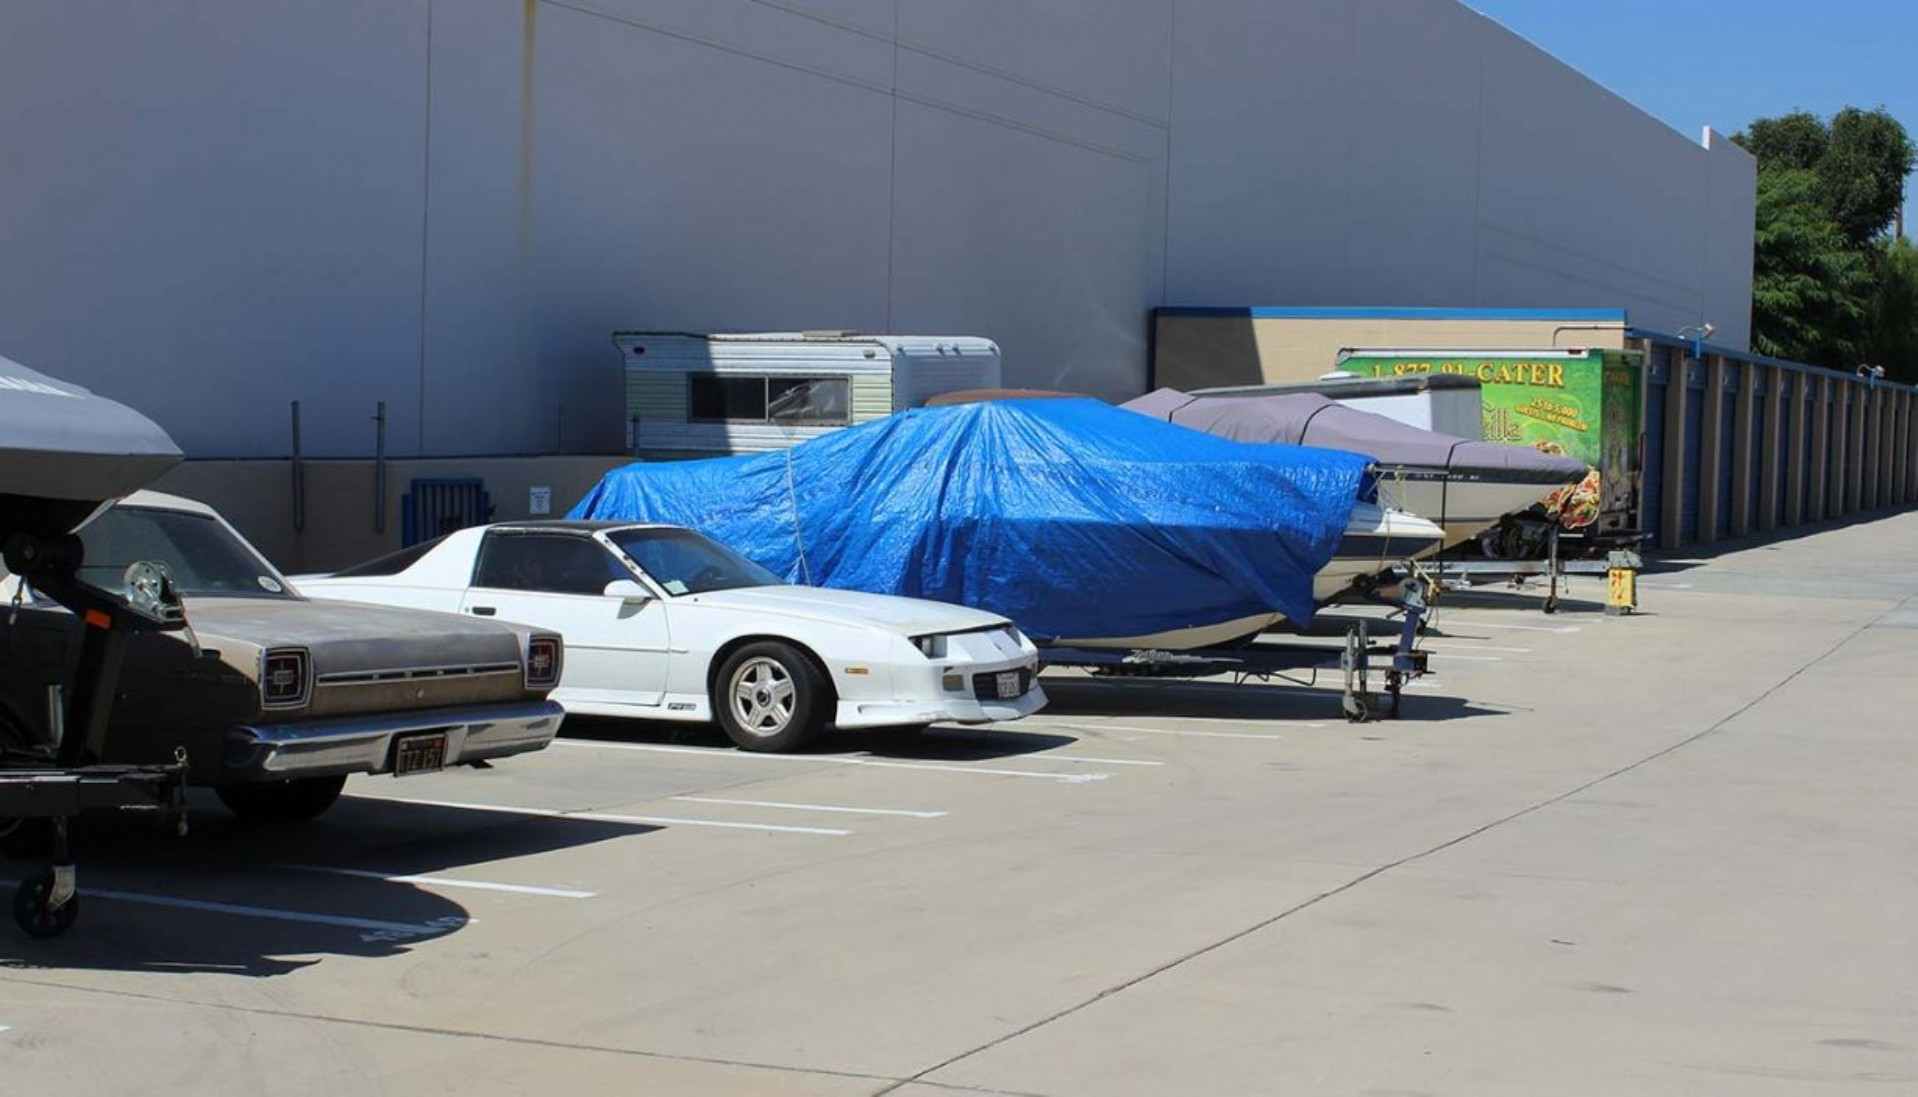 Cars, boats and trailers parked in vehicle storage spaces